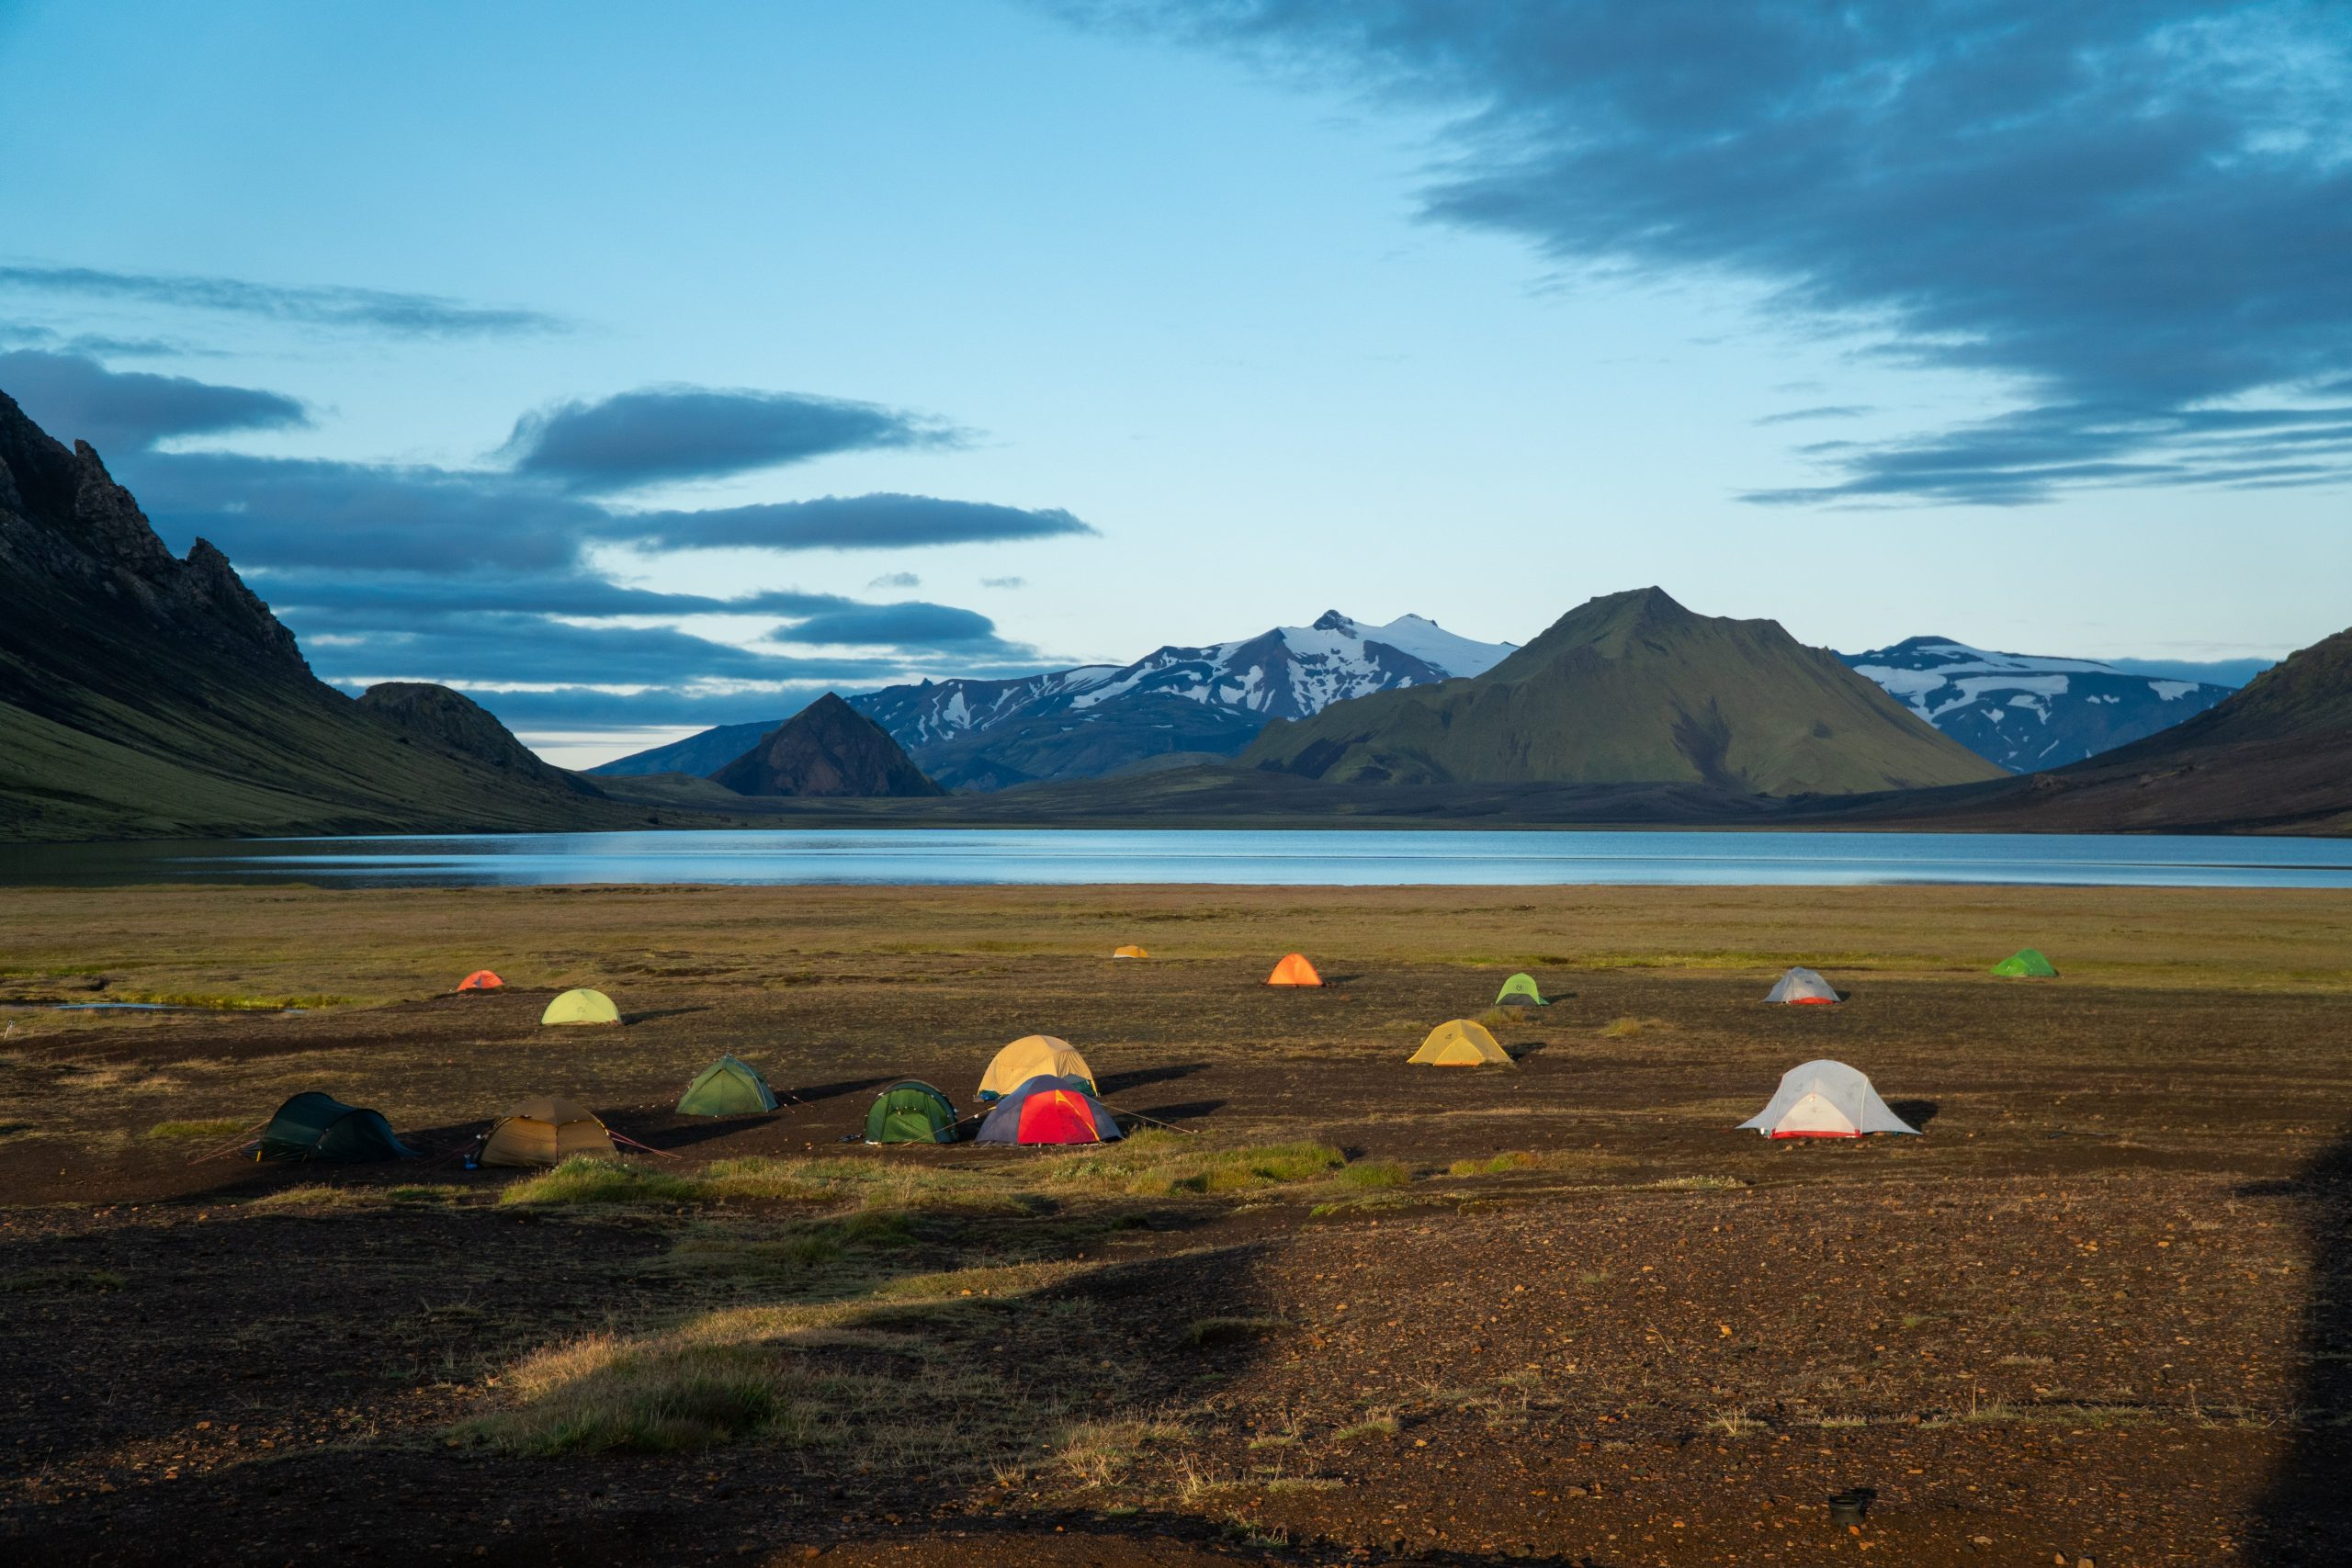 Tents at a campsite in the Icelandic Highlands, overlooking a lake.